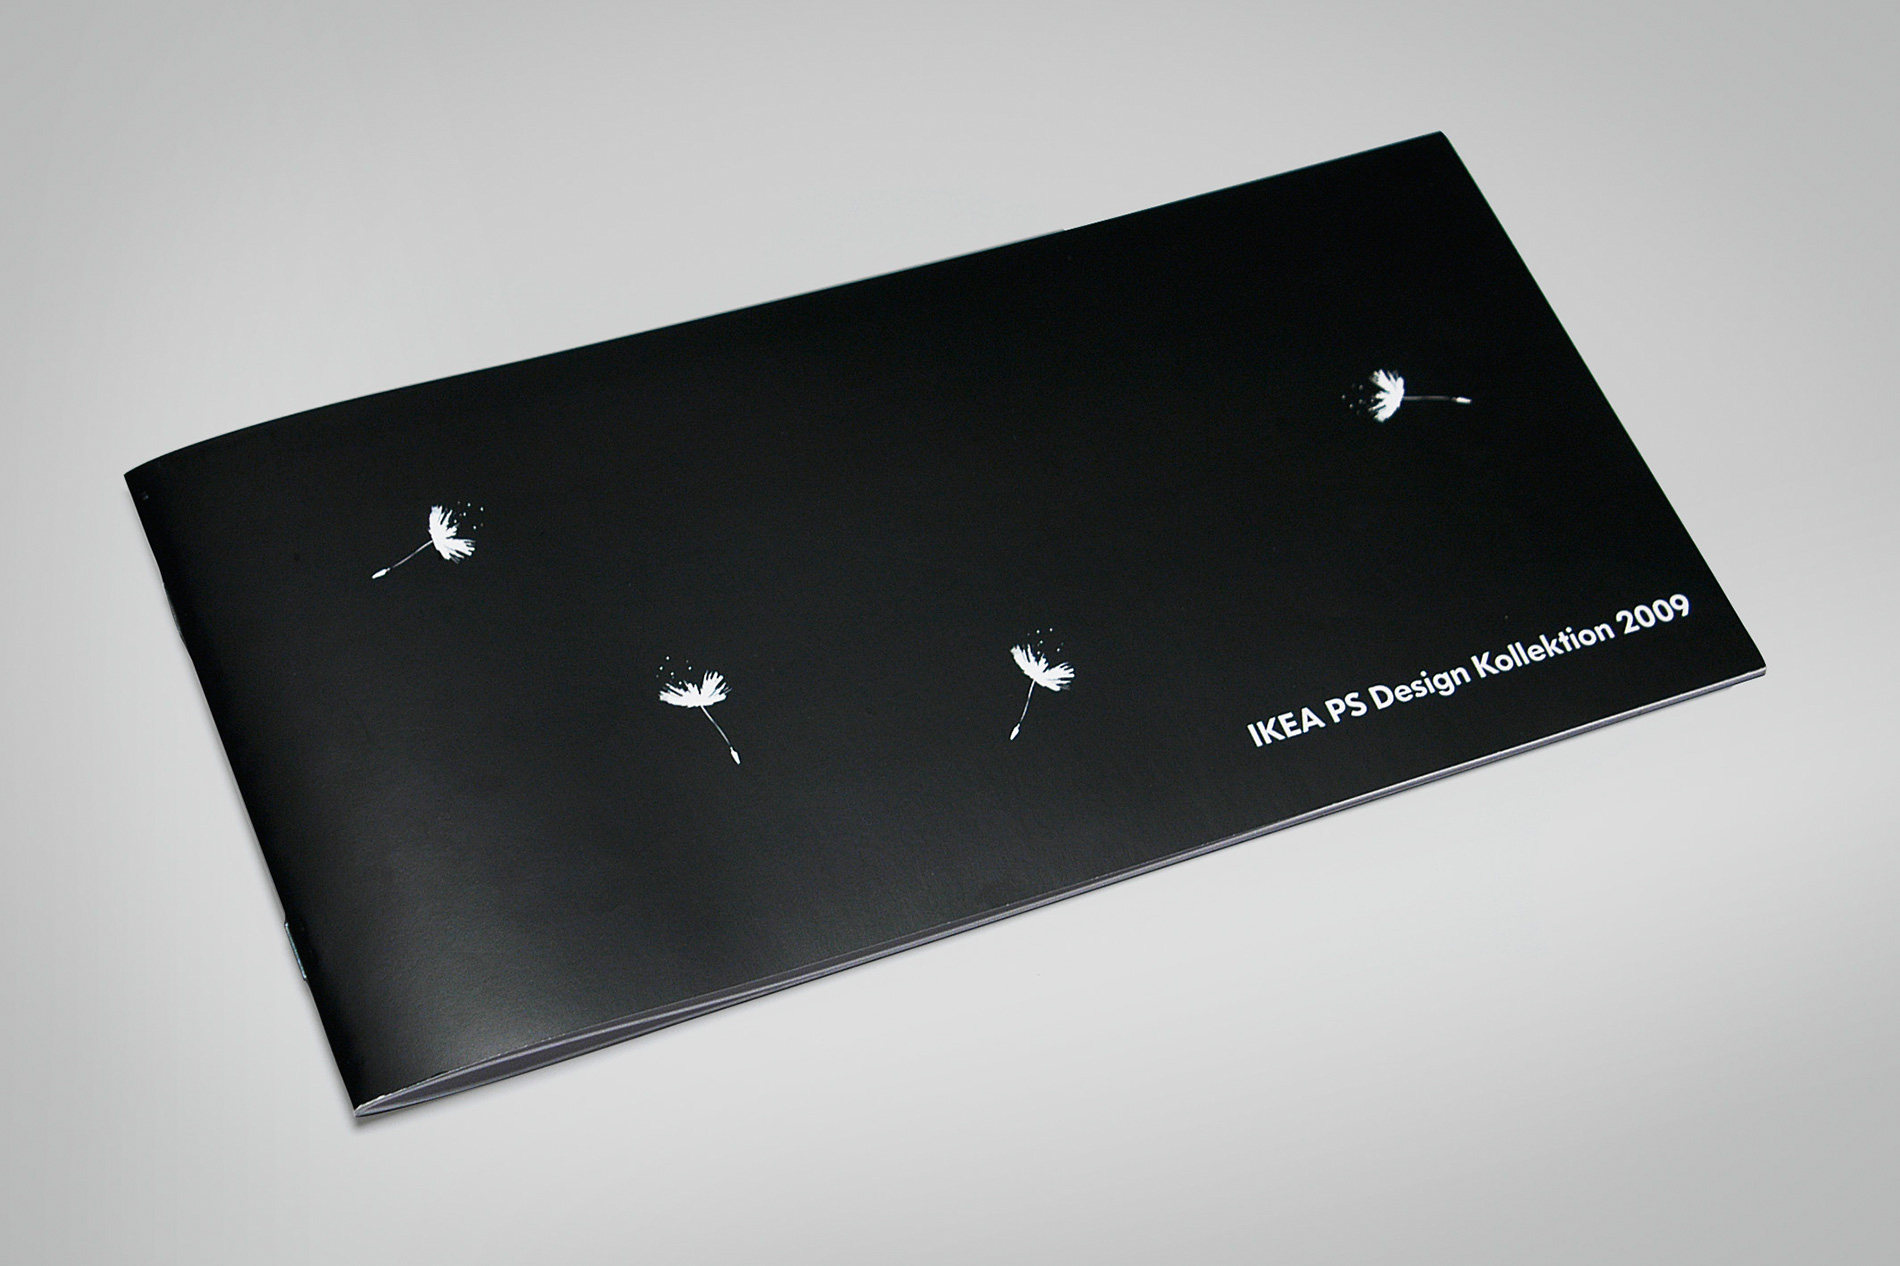 Sina Otto Catalogue With Ikea Ps Design Collection For An